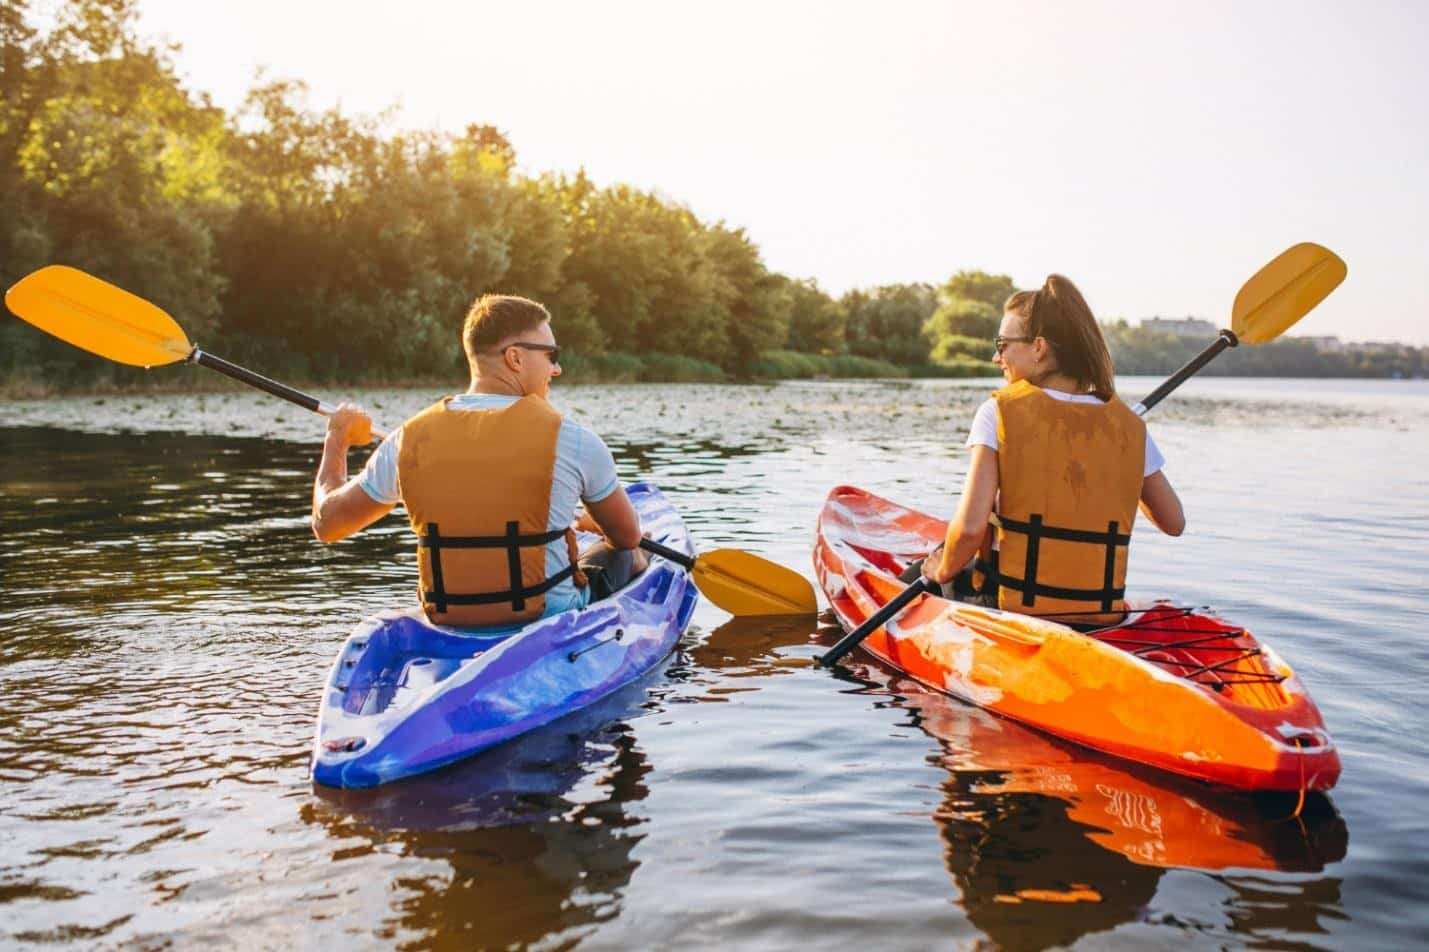 What is the average price of a kayak? A few interesting kayak options for beginners